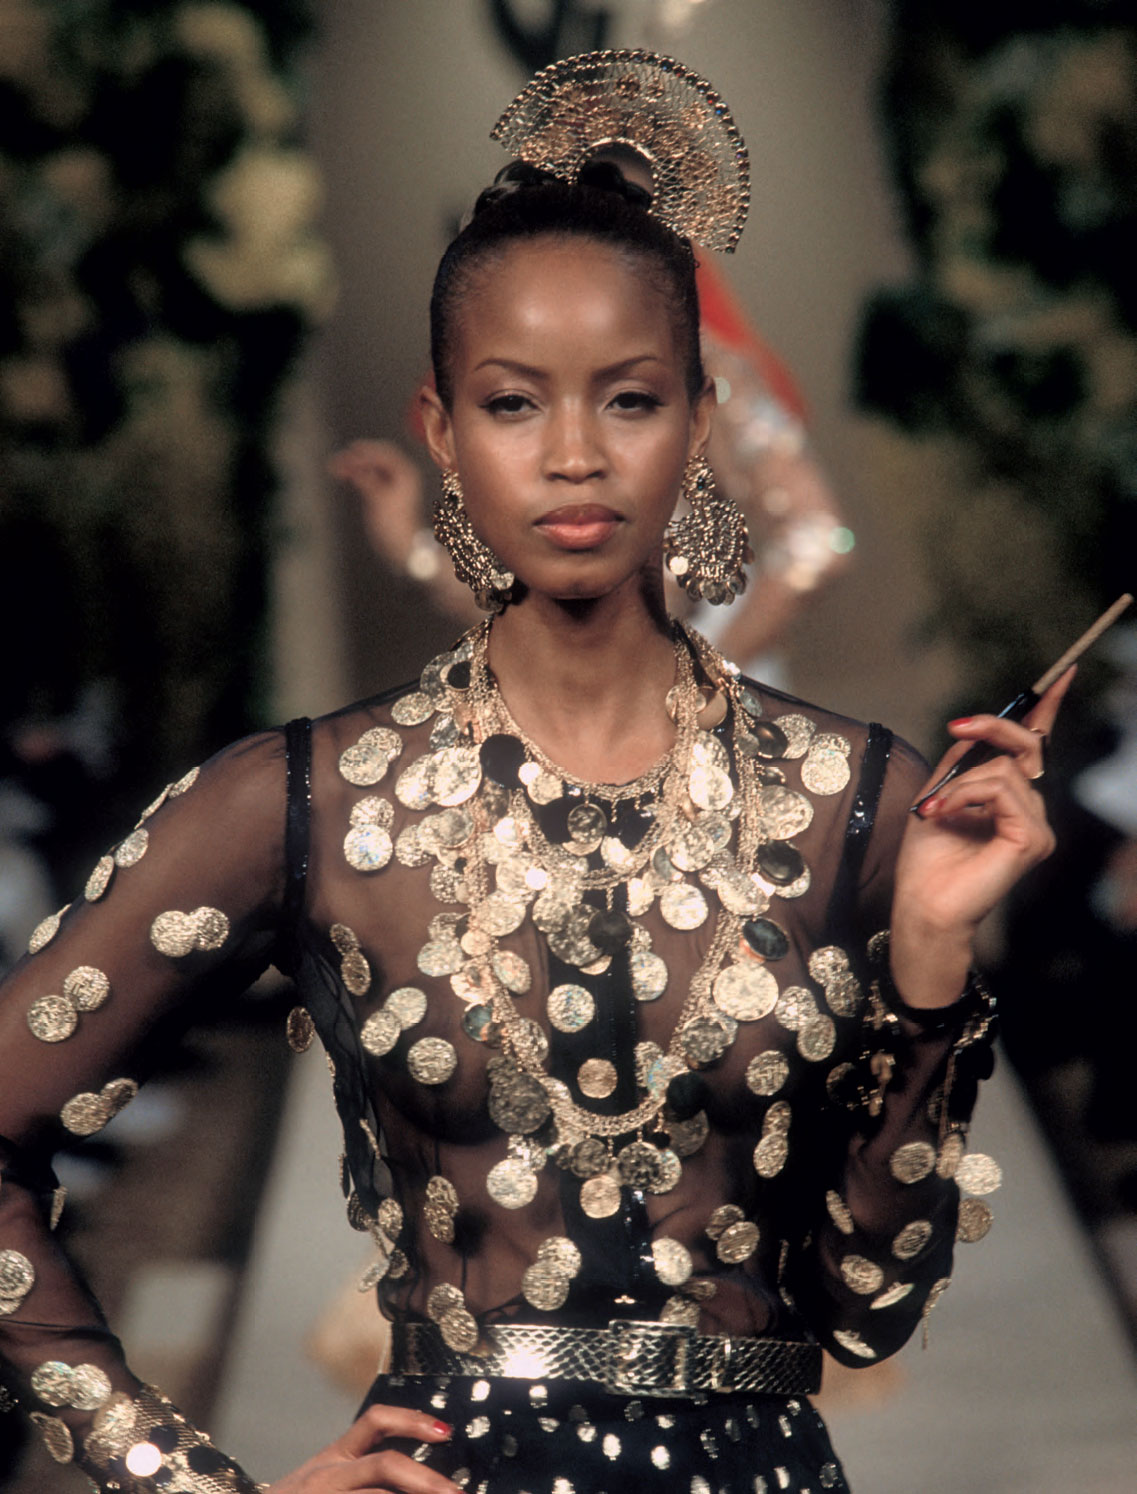 e18104d9fb6 Gypsy-inspired dress with accessories, Spring/Summer 2000 haute couture  collection. The